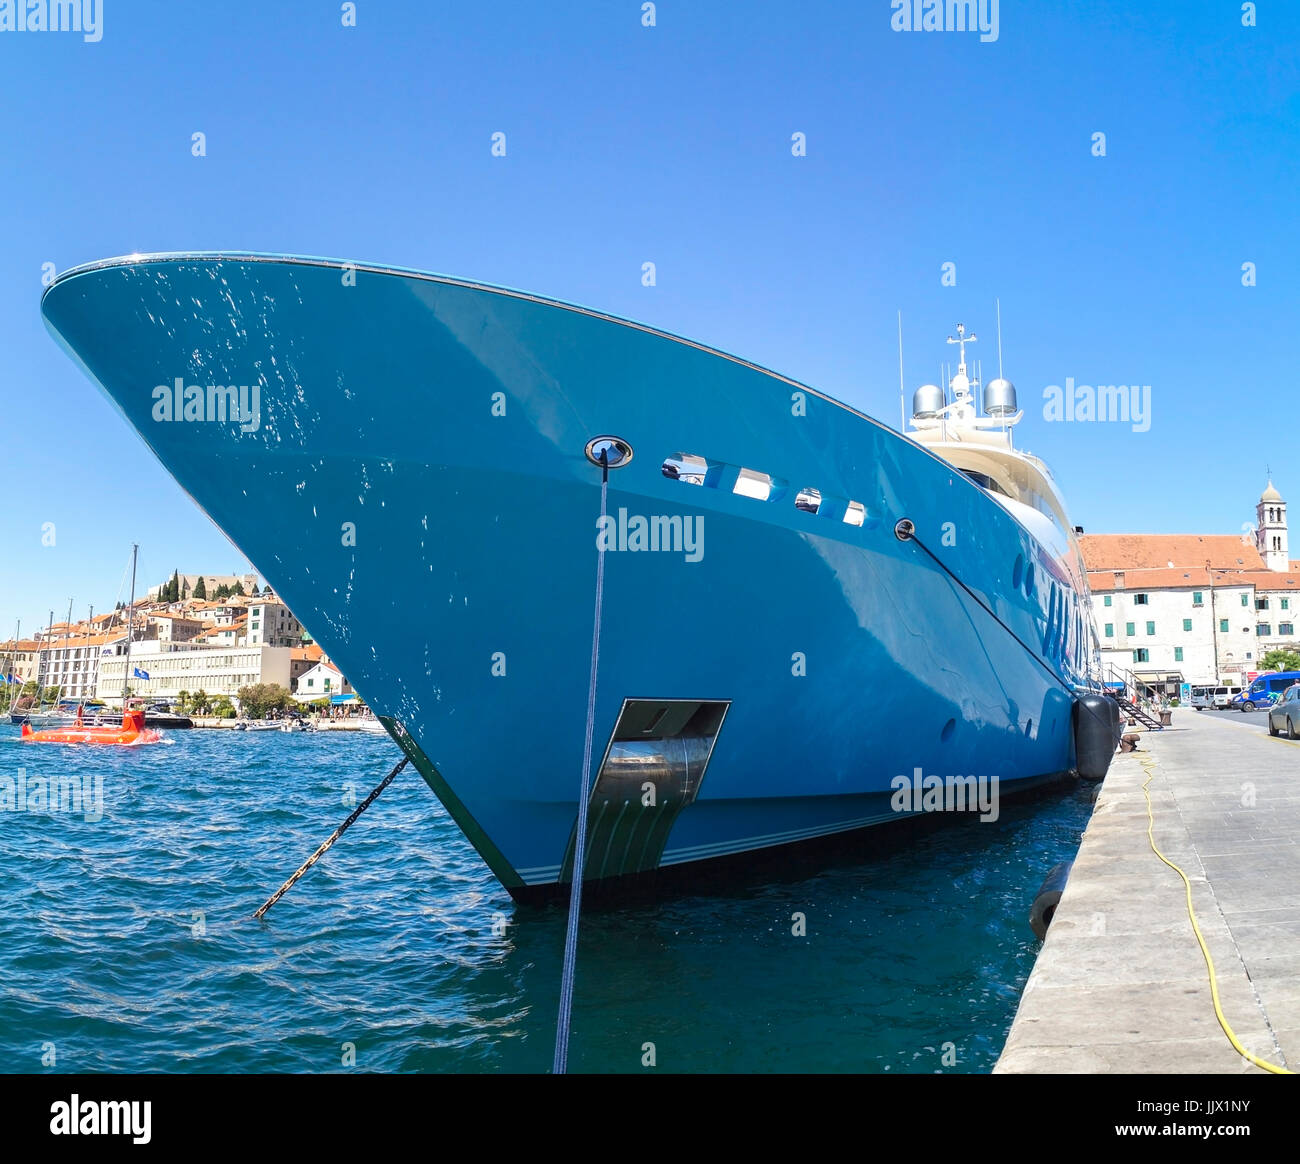 Luxury yacht on a sunny day in Croatia Stock Photo